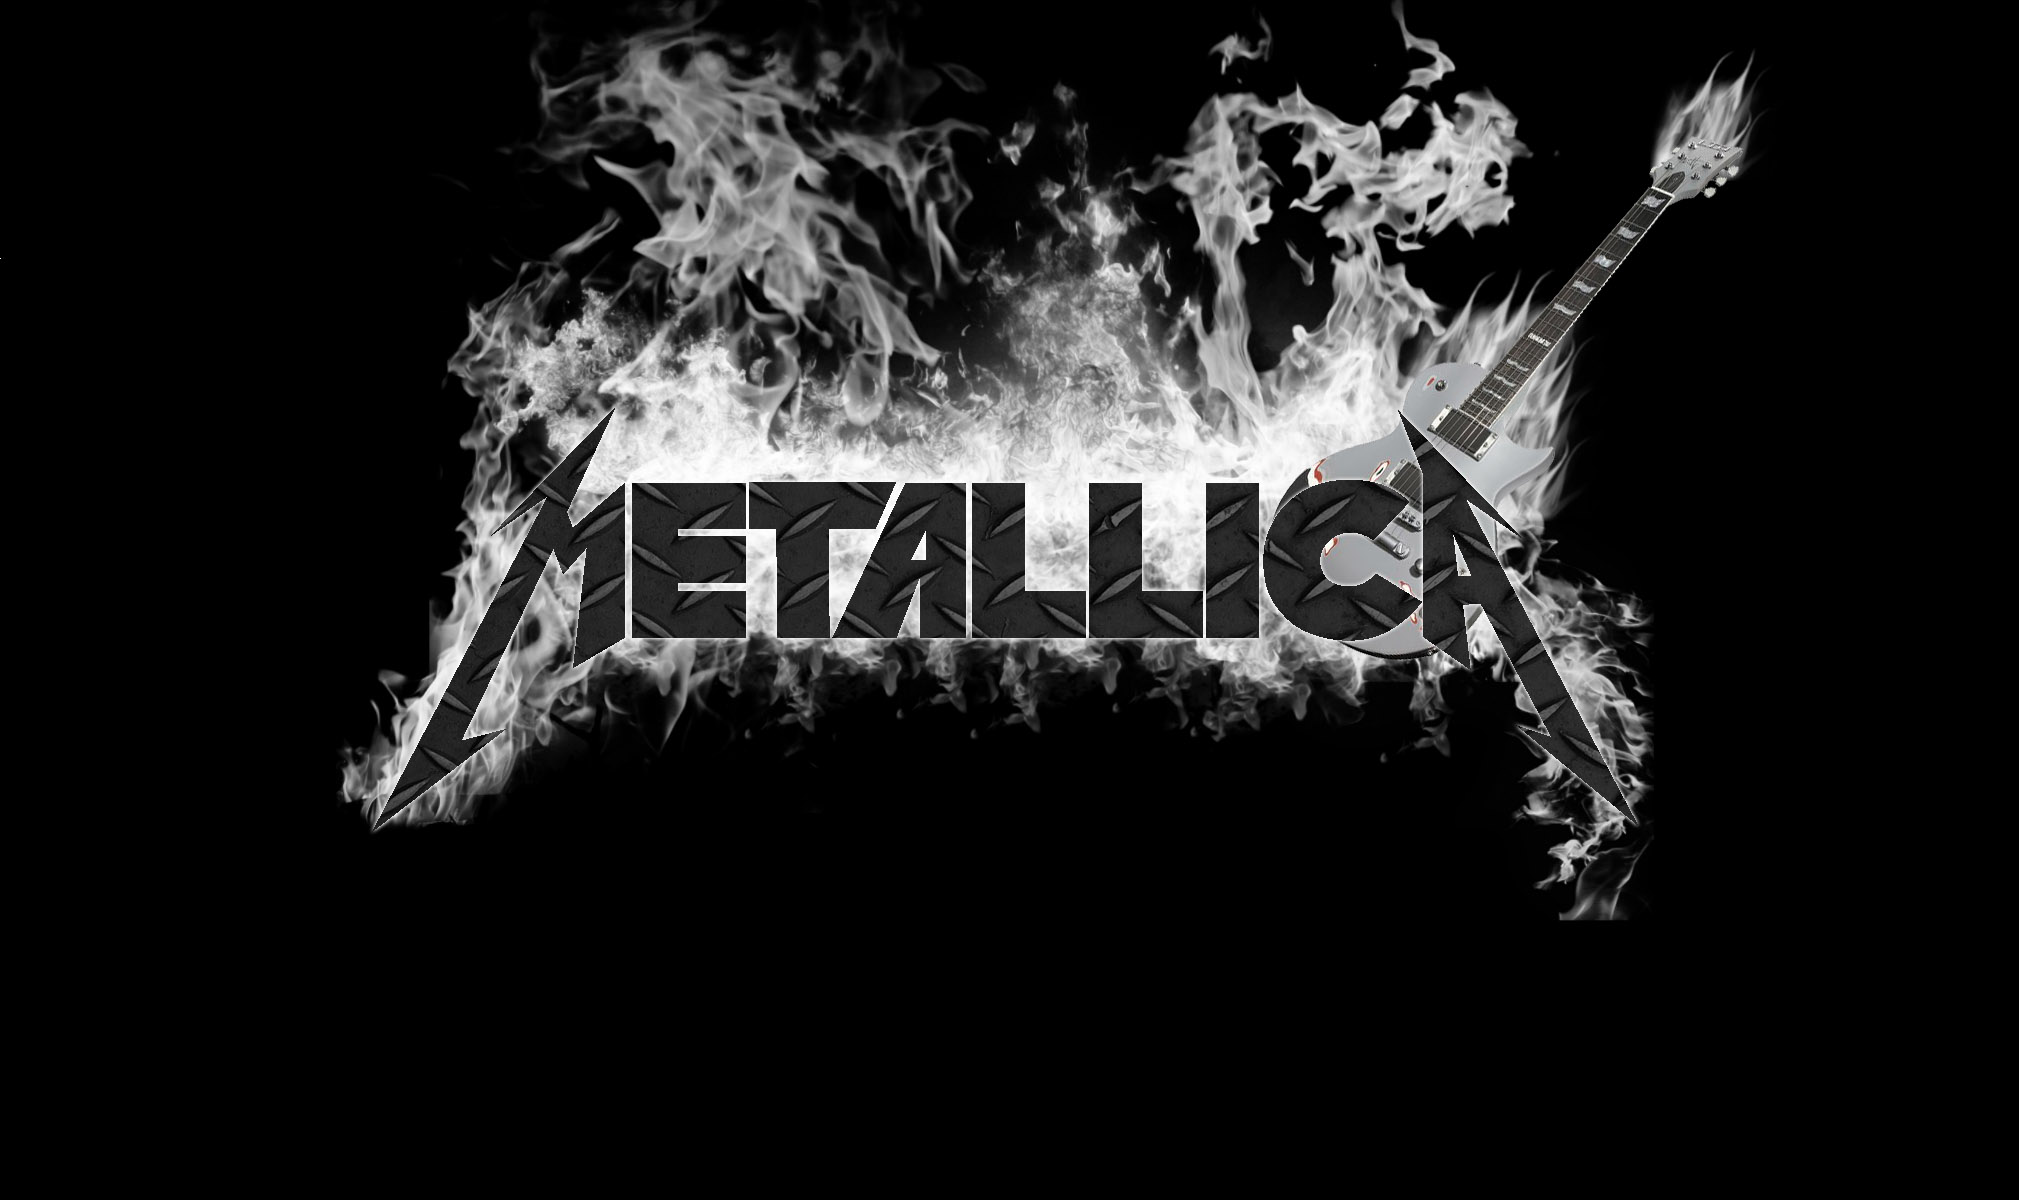 Metallica Wallpapers